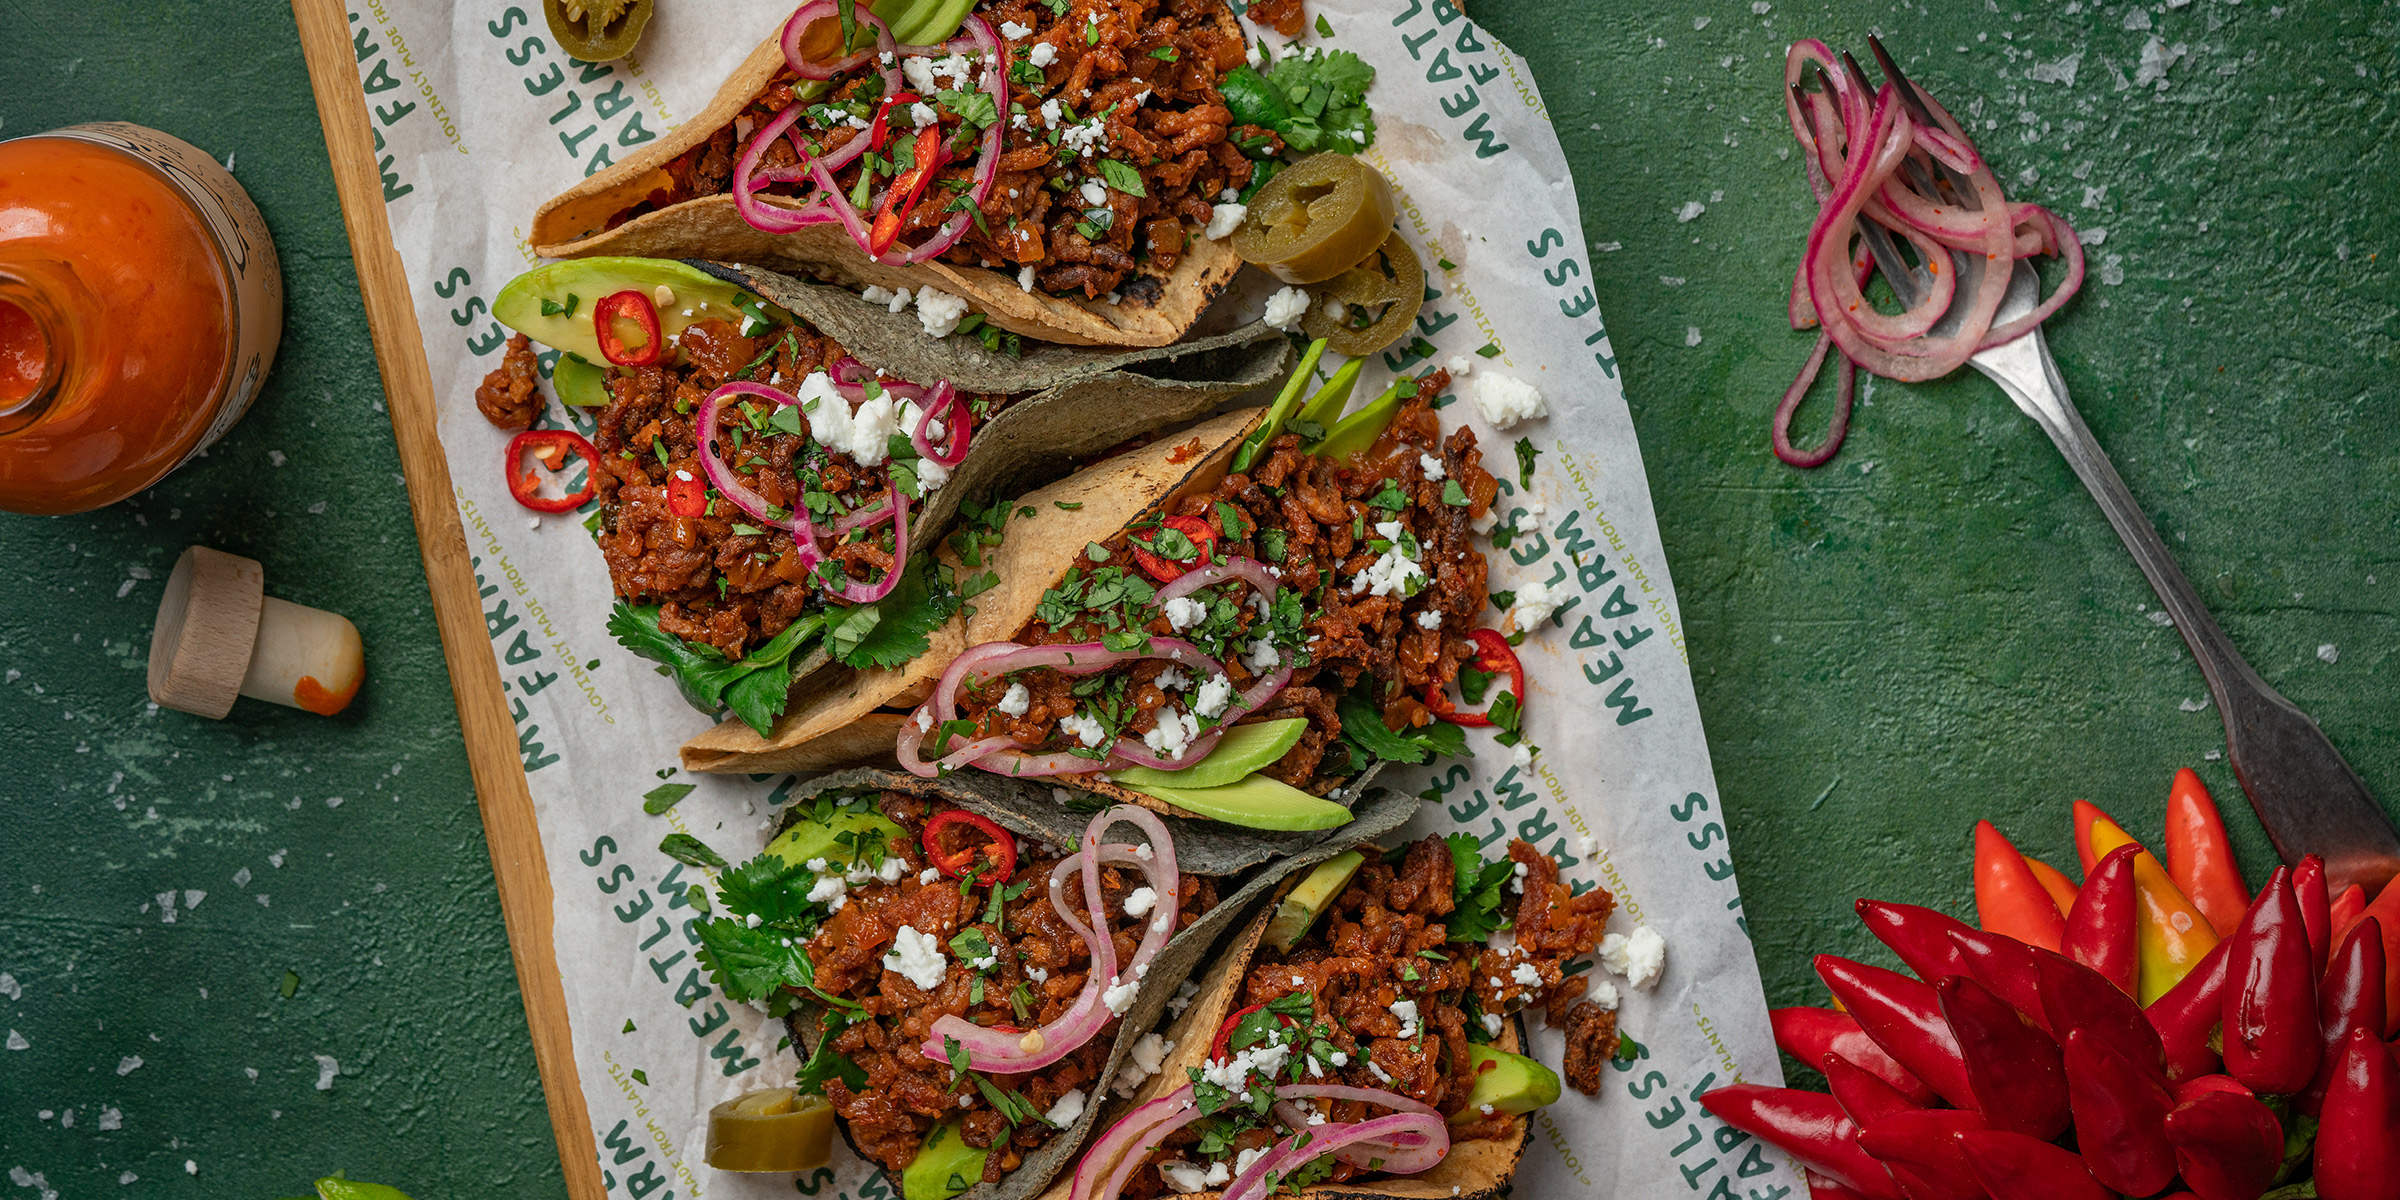 Meatless Tacos with plant-based ground